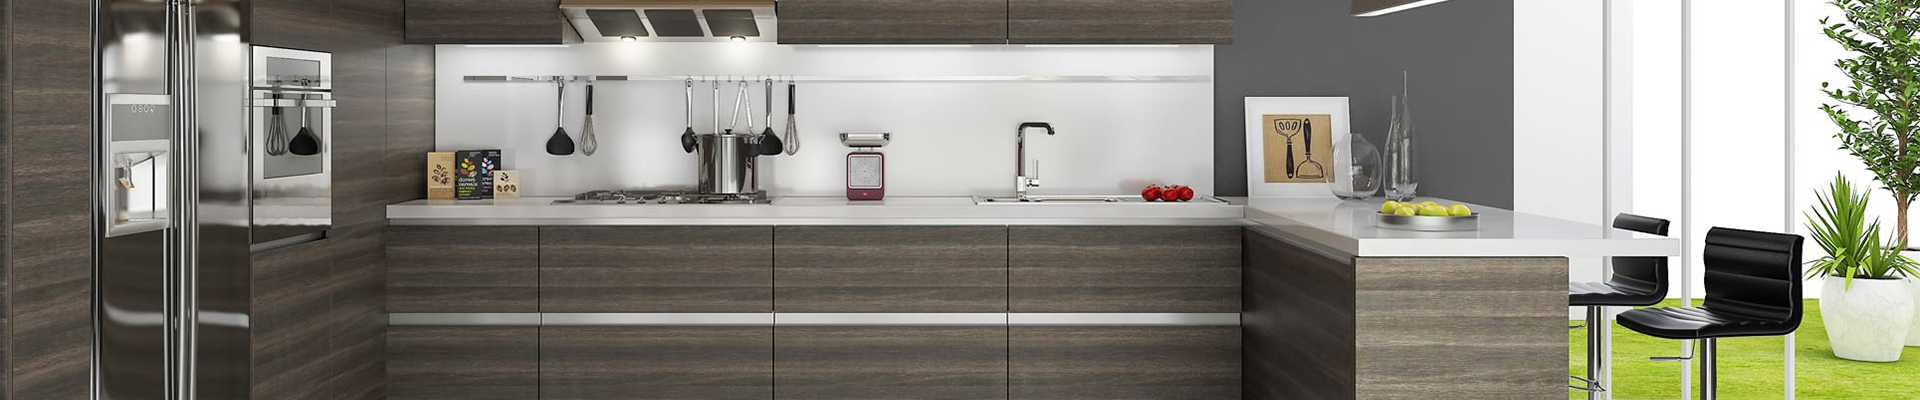 Rev-A-Shelf Bathroom and Kitchen Cabinet Drawers